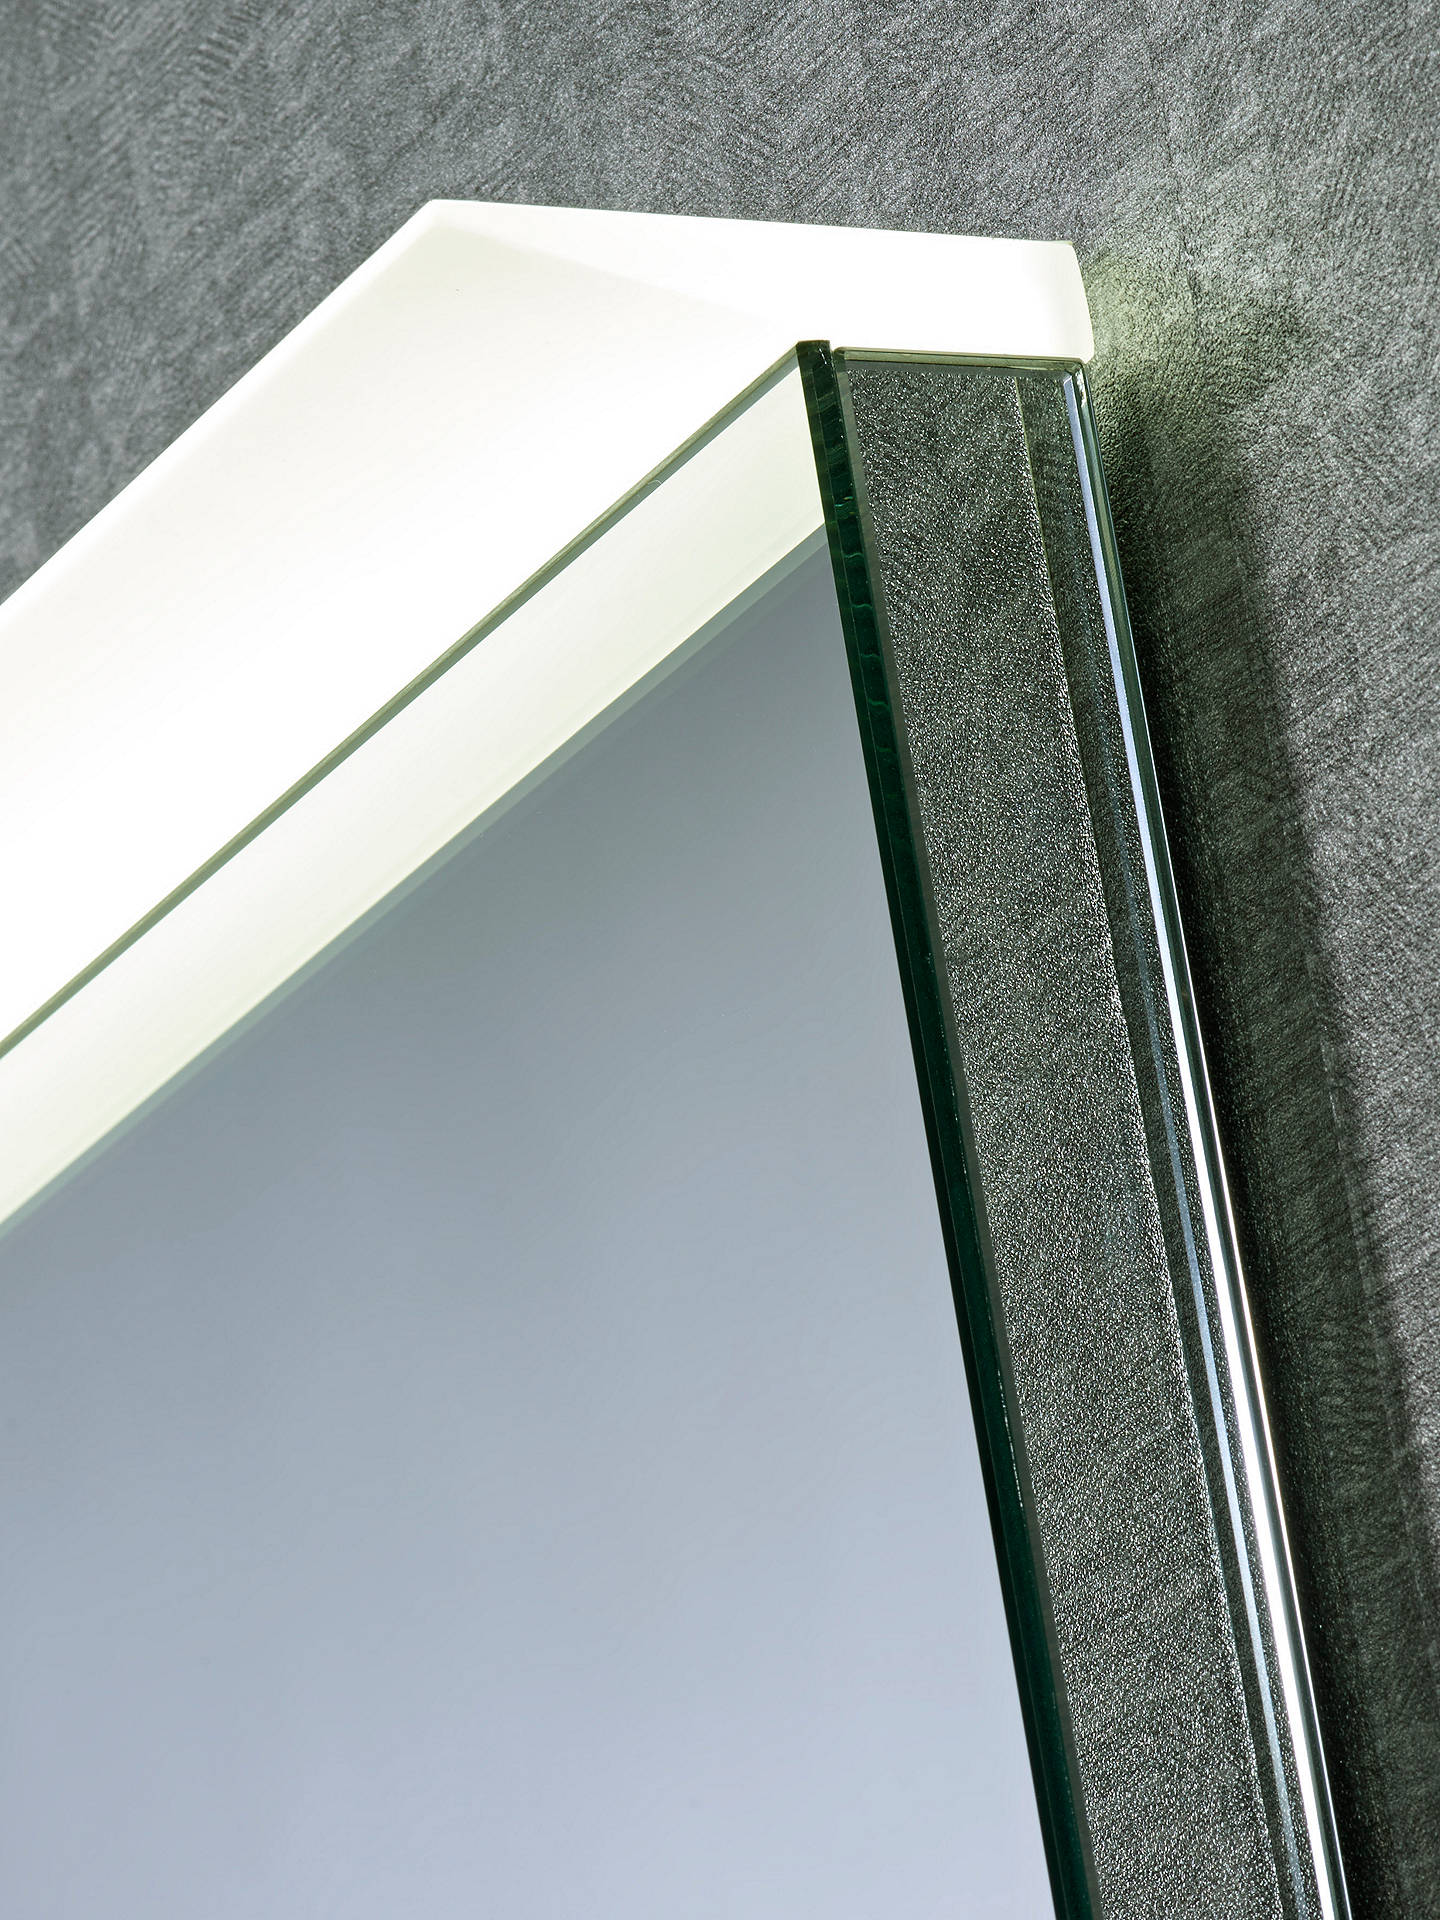 BuyRoper Rhodes Induct Illuminated LED Bathroom Mirror Online at johnlewis.com